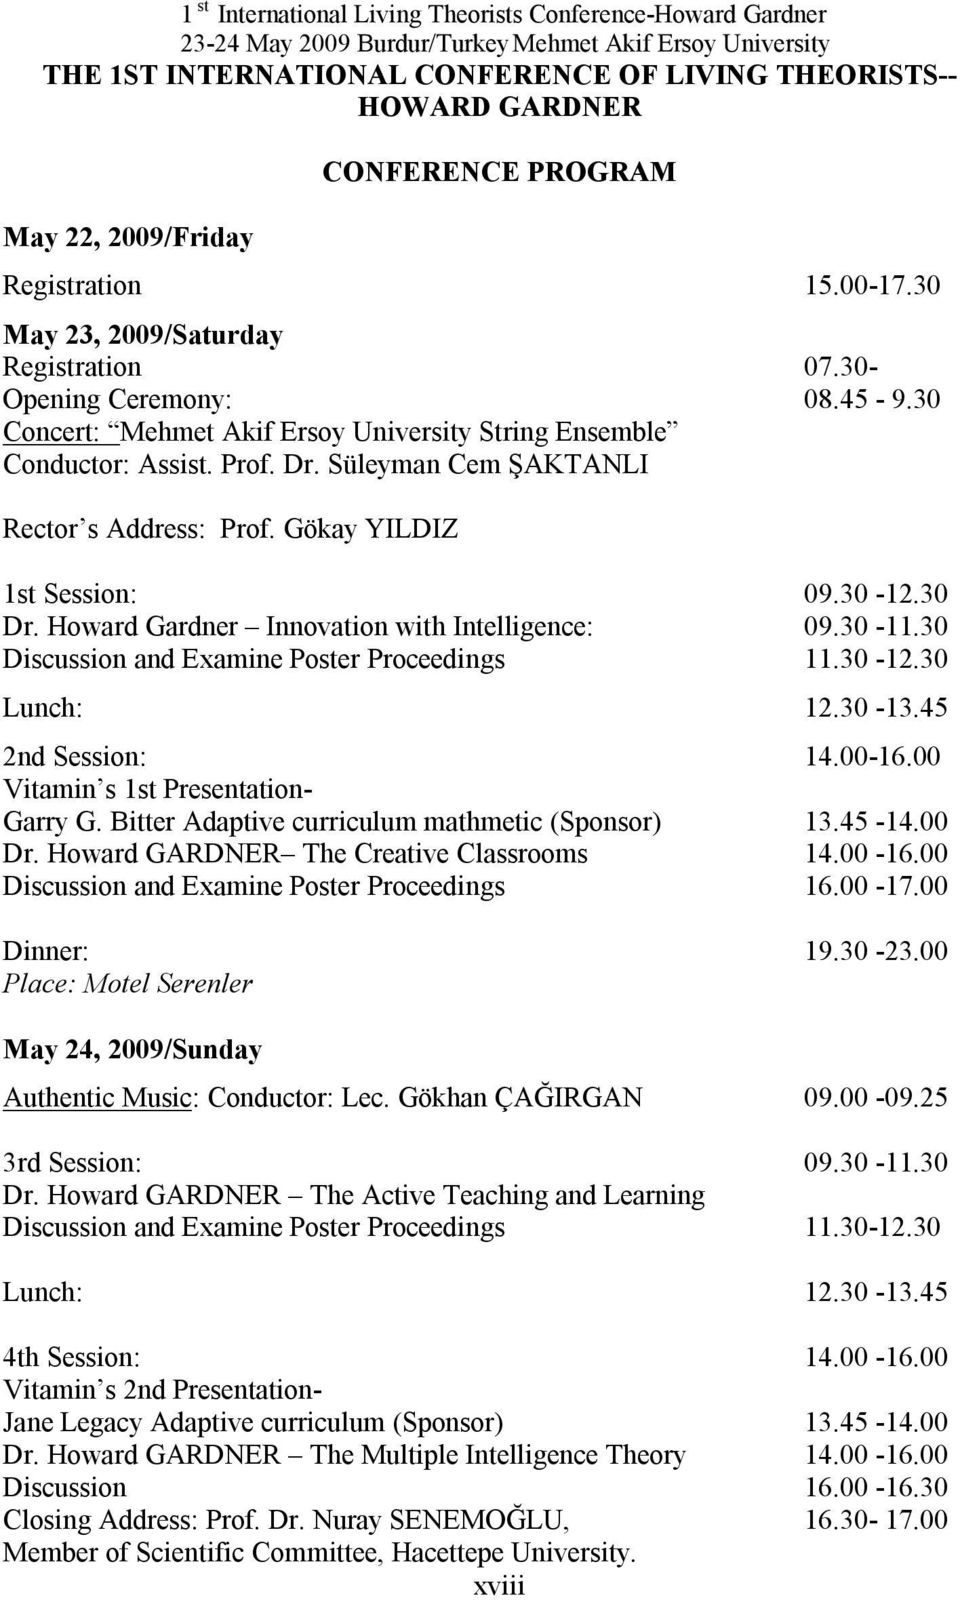 Howard Gardner Innovation with Intelligence: 09.30-11.30 Discussion and Examine Poster Proceedings 11.30-12.30 Lunch: 12.30-13.45 2nd Session: 14.00-16.00 Vitamin s 1st Presentation- Garry G.